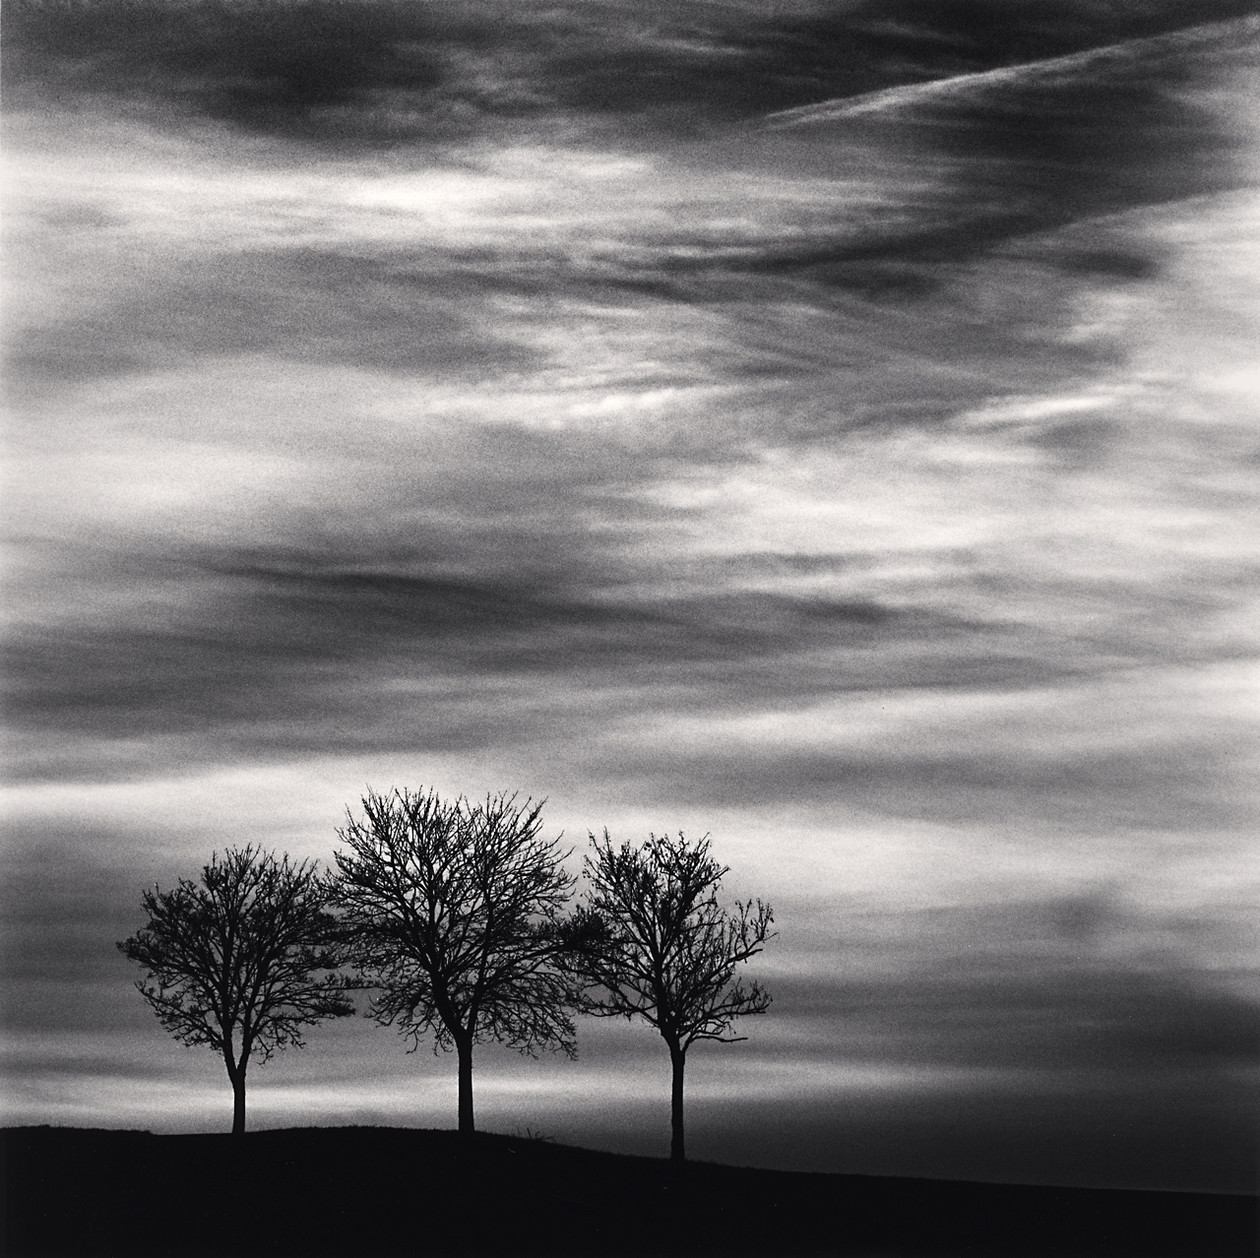 Three Trees at Dusk, Fain les Moutiers, Bourgogne (2013) by Michael Kenna